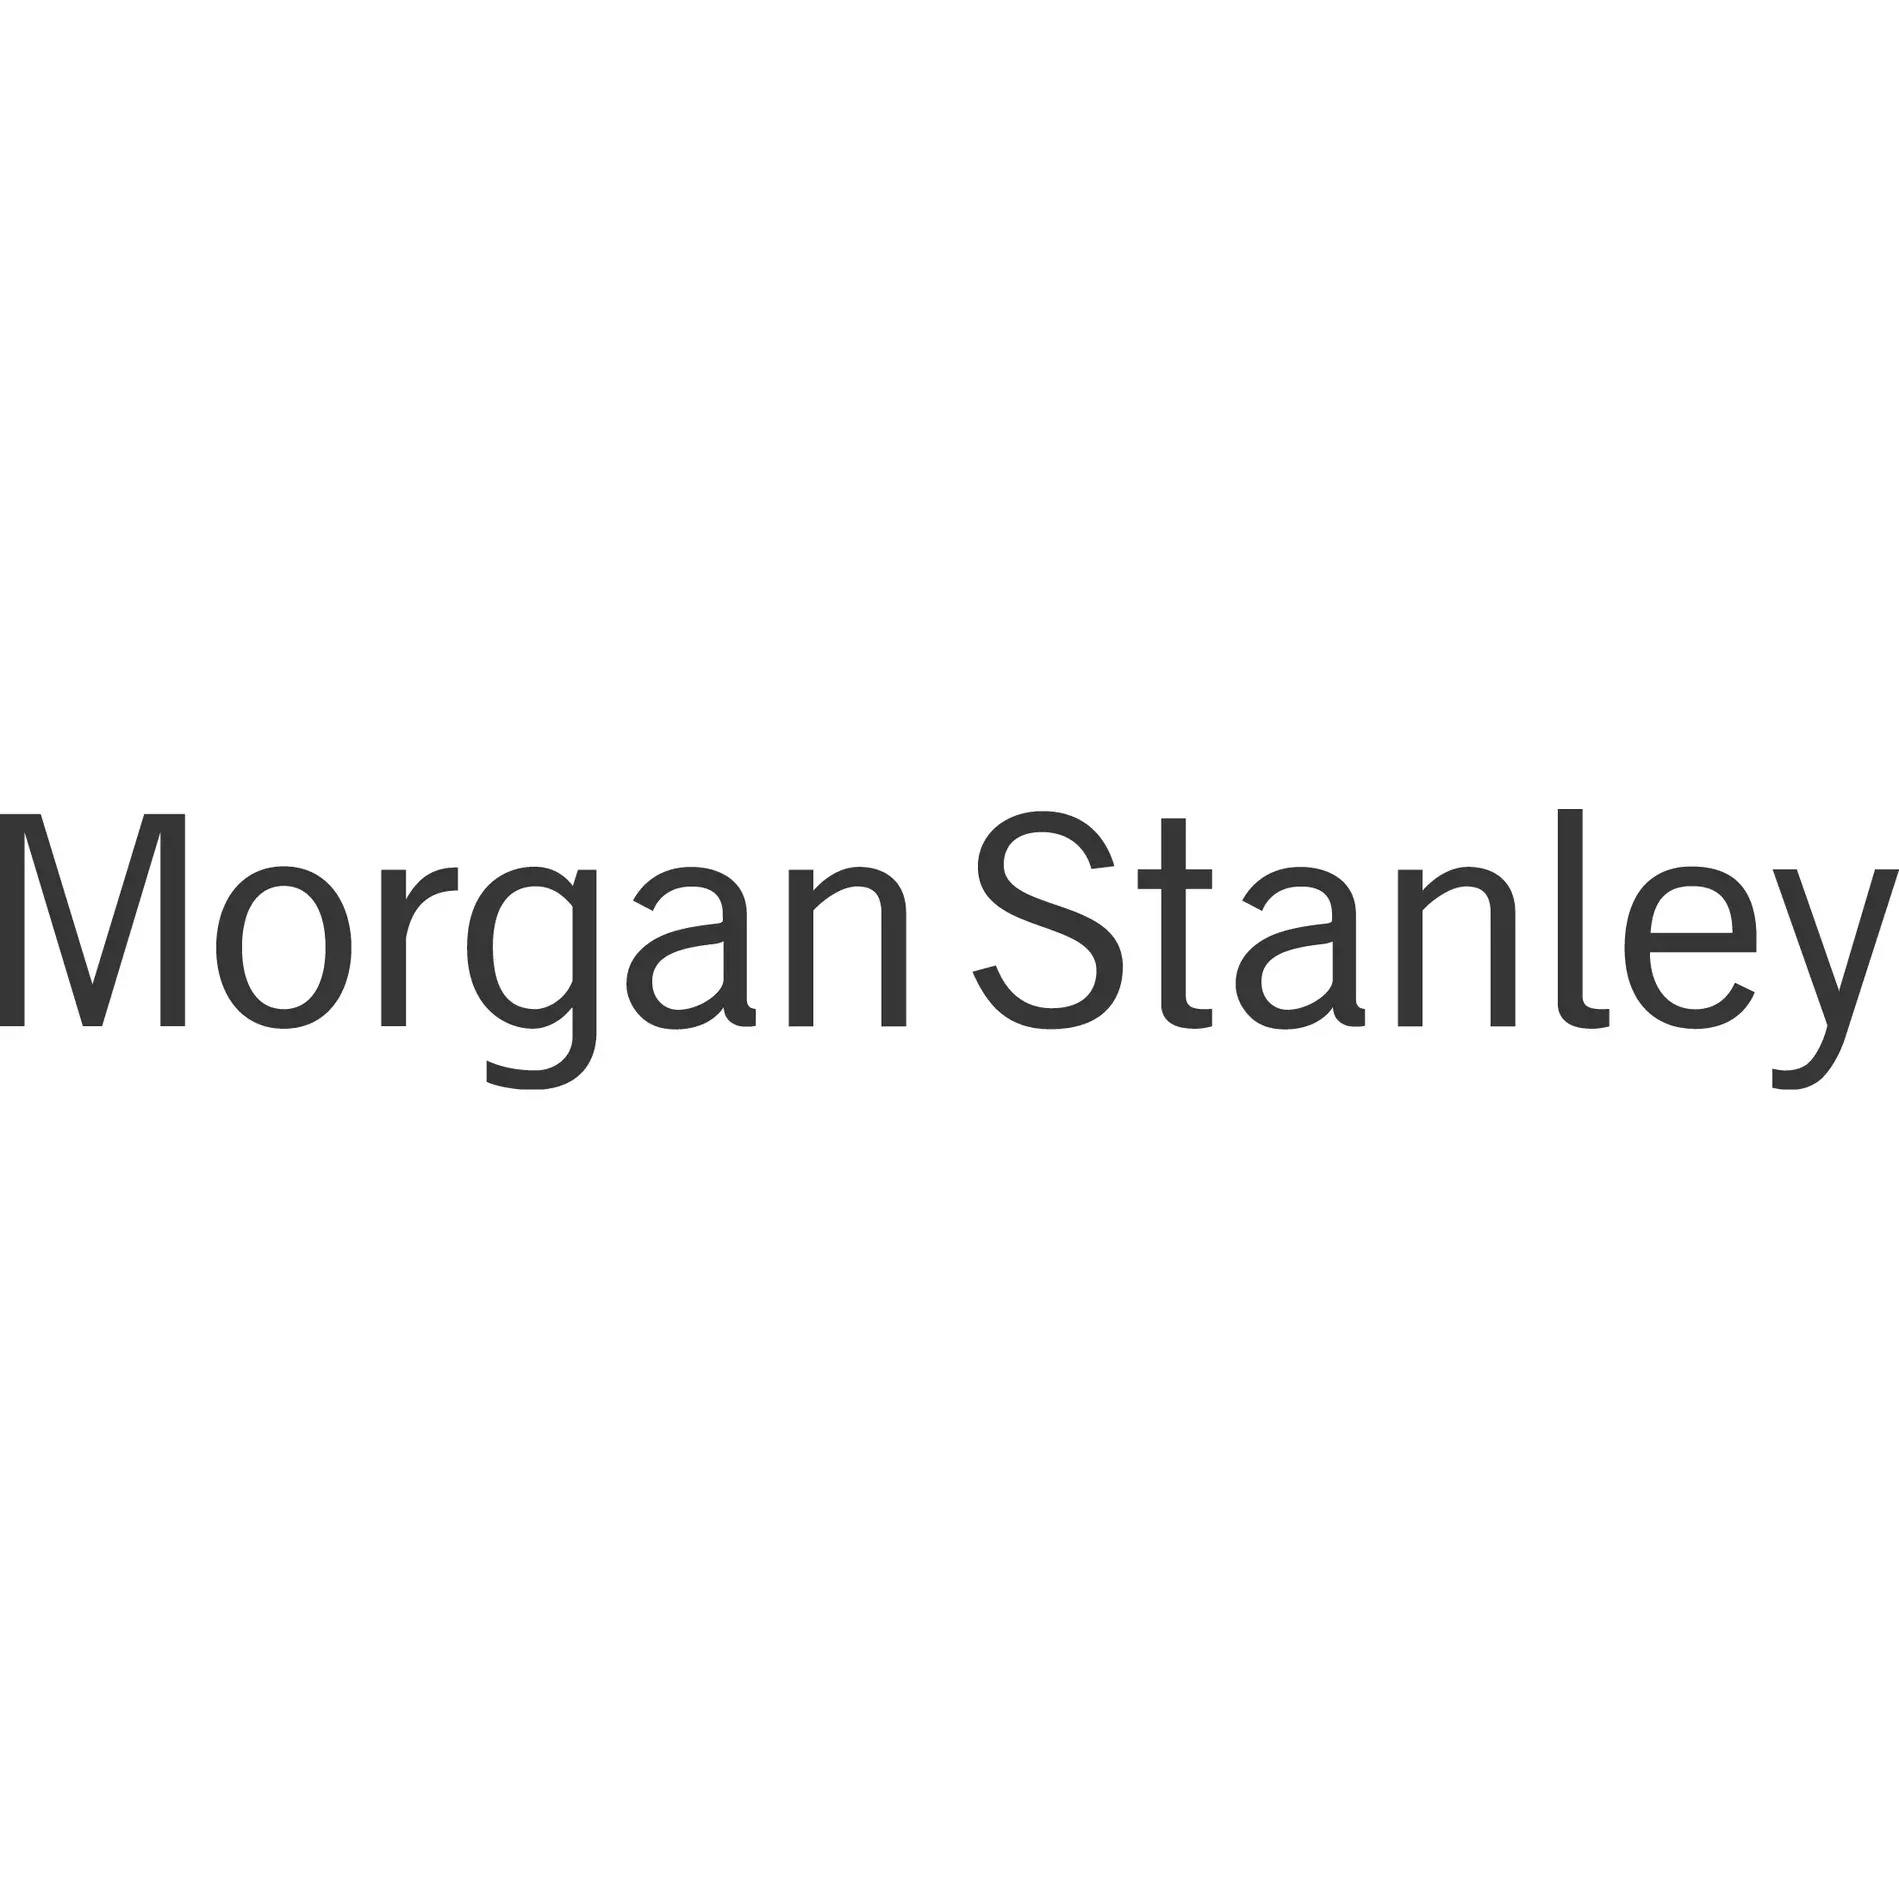 Richard Bratincevic - Morgan Stanley | Financial Advisor in Pasadena,California